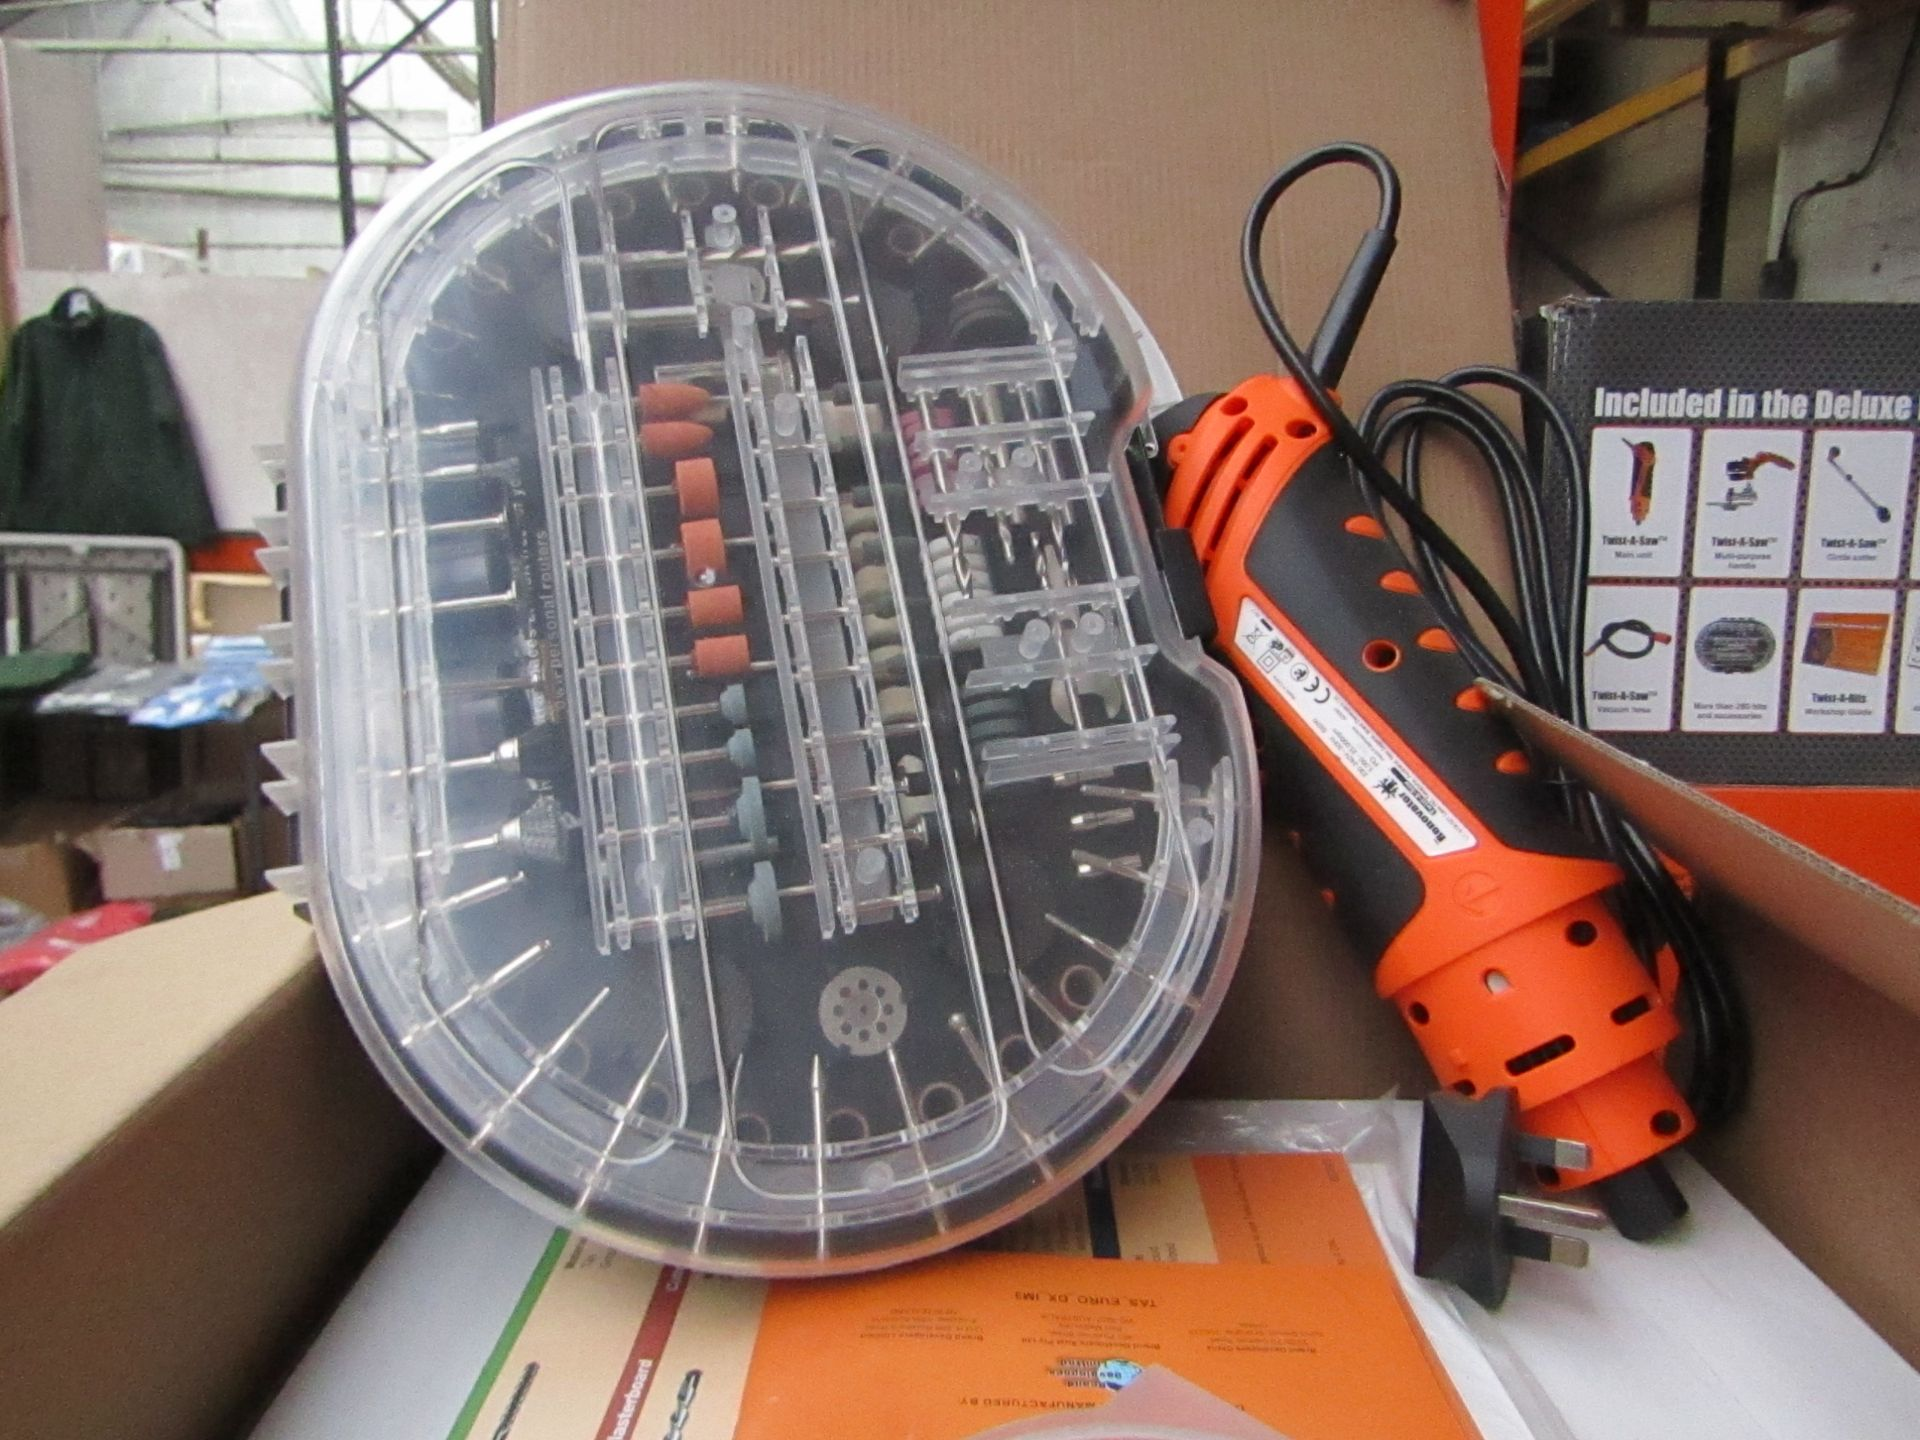 Lot 31 - | 1X | RENOVATOR TWIST A SAW WITH ACCESSORY KIT | TESTED AND WORKING BUT WE HAVEN'T CHECKED IF ALL